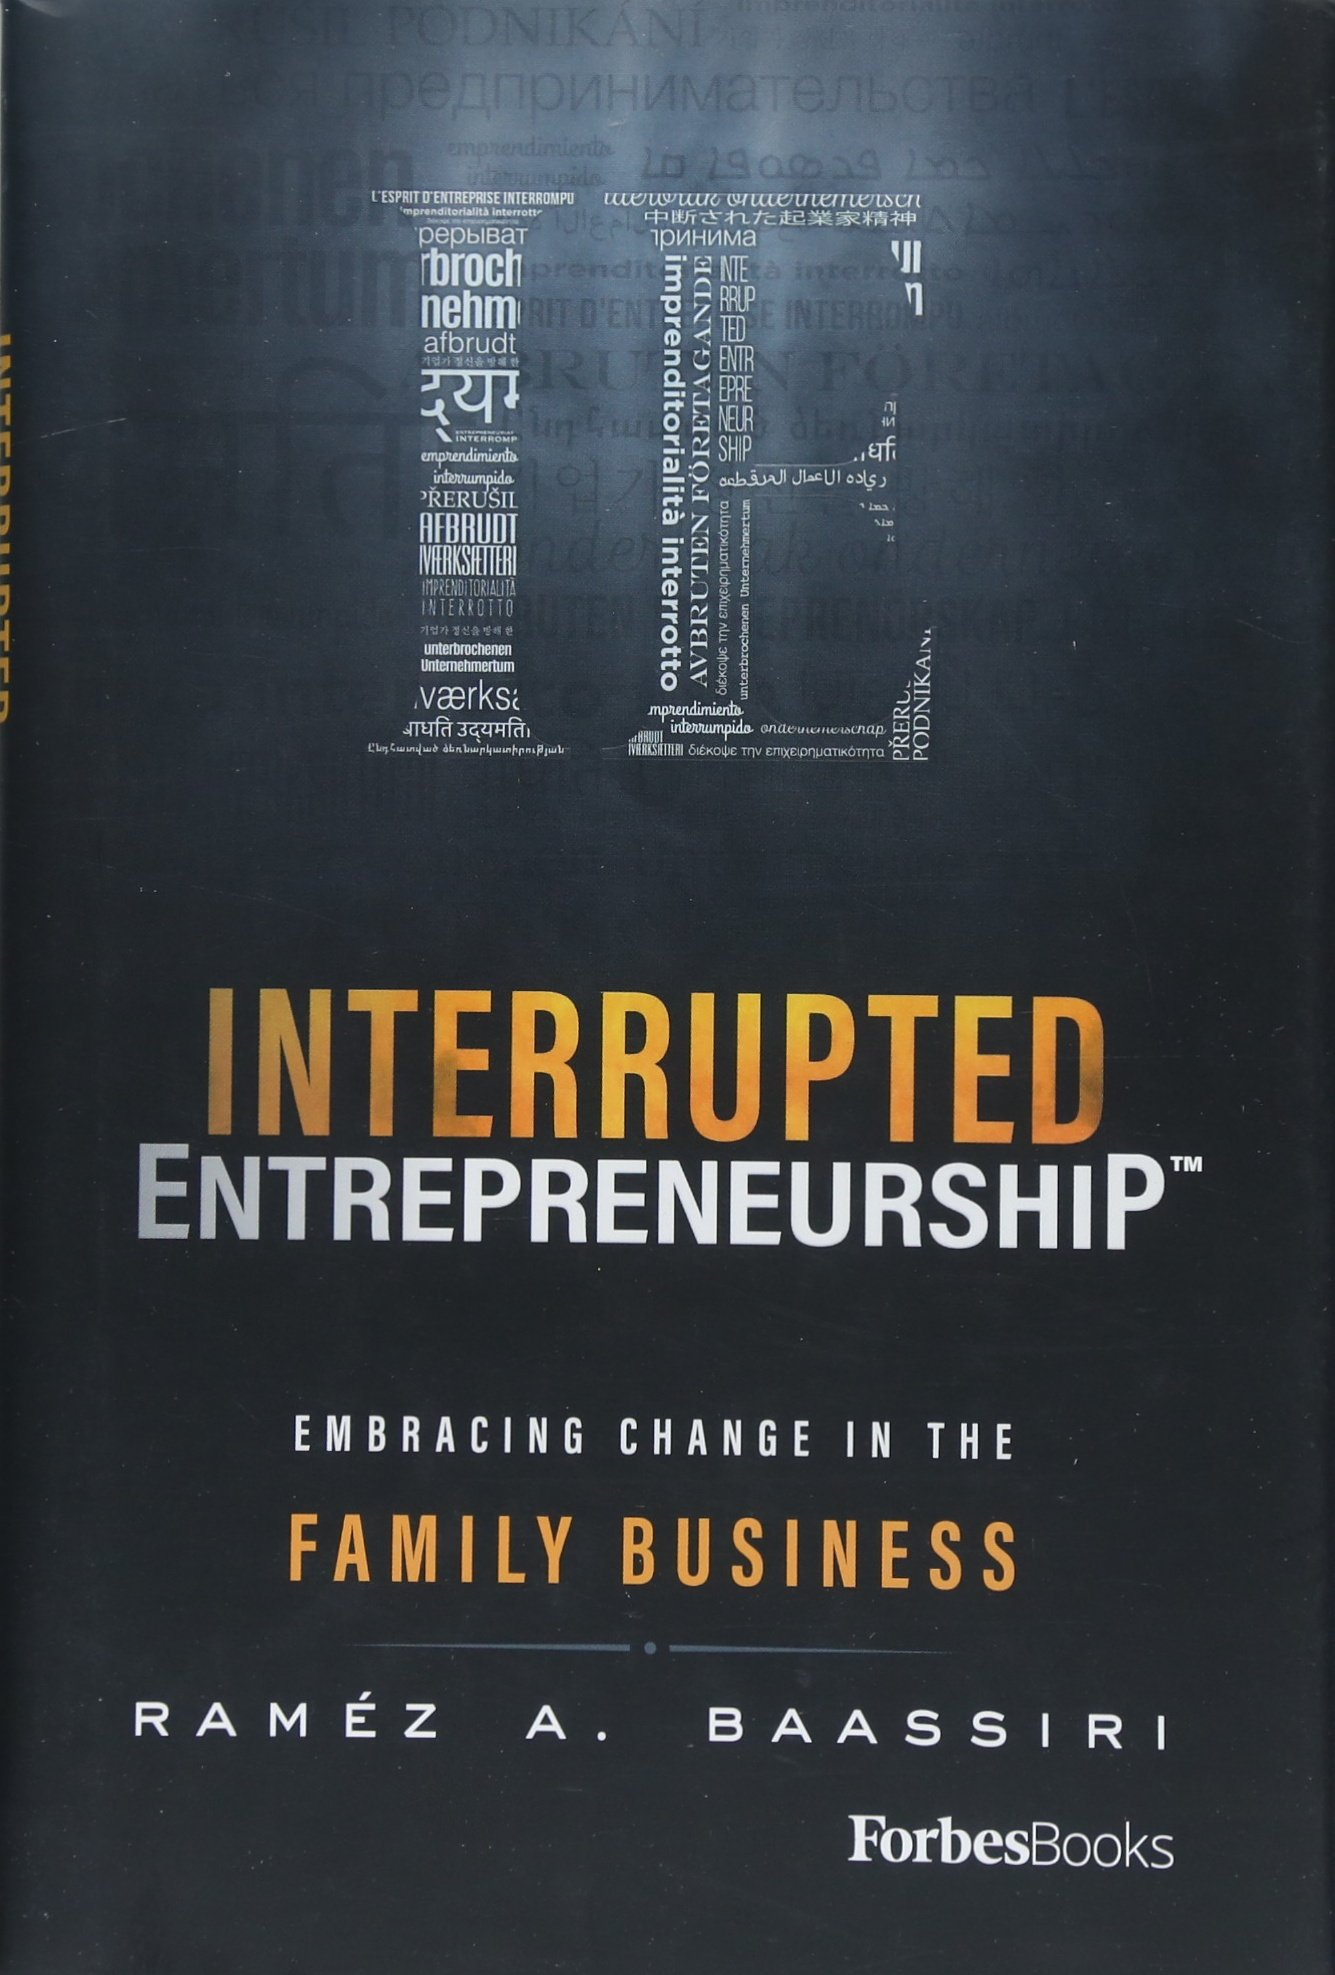 Interrupted Entrepreneurship™: Embracing Change In The Family Business